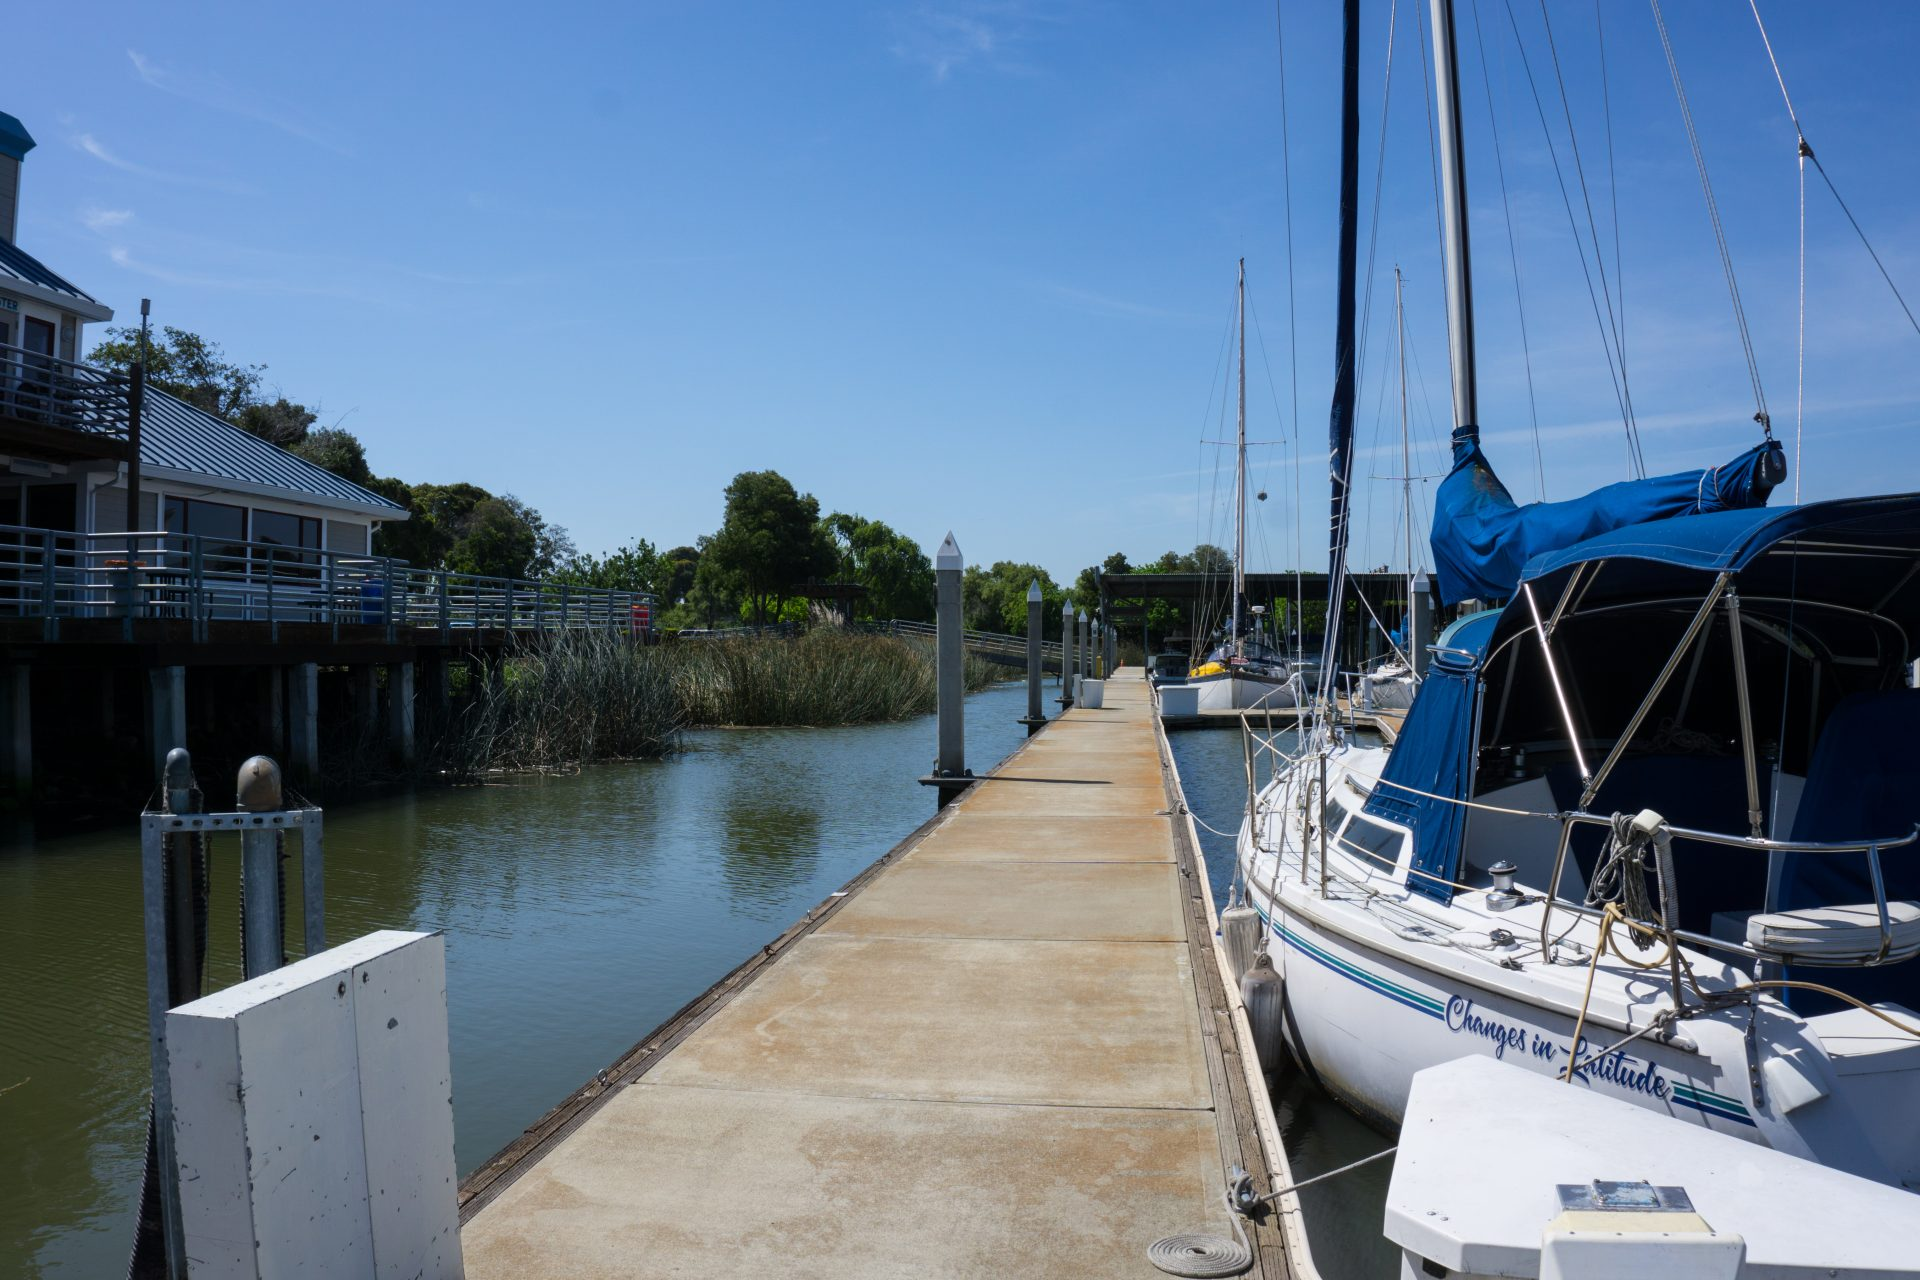 long straight concrete dock with sailboats moored on right